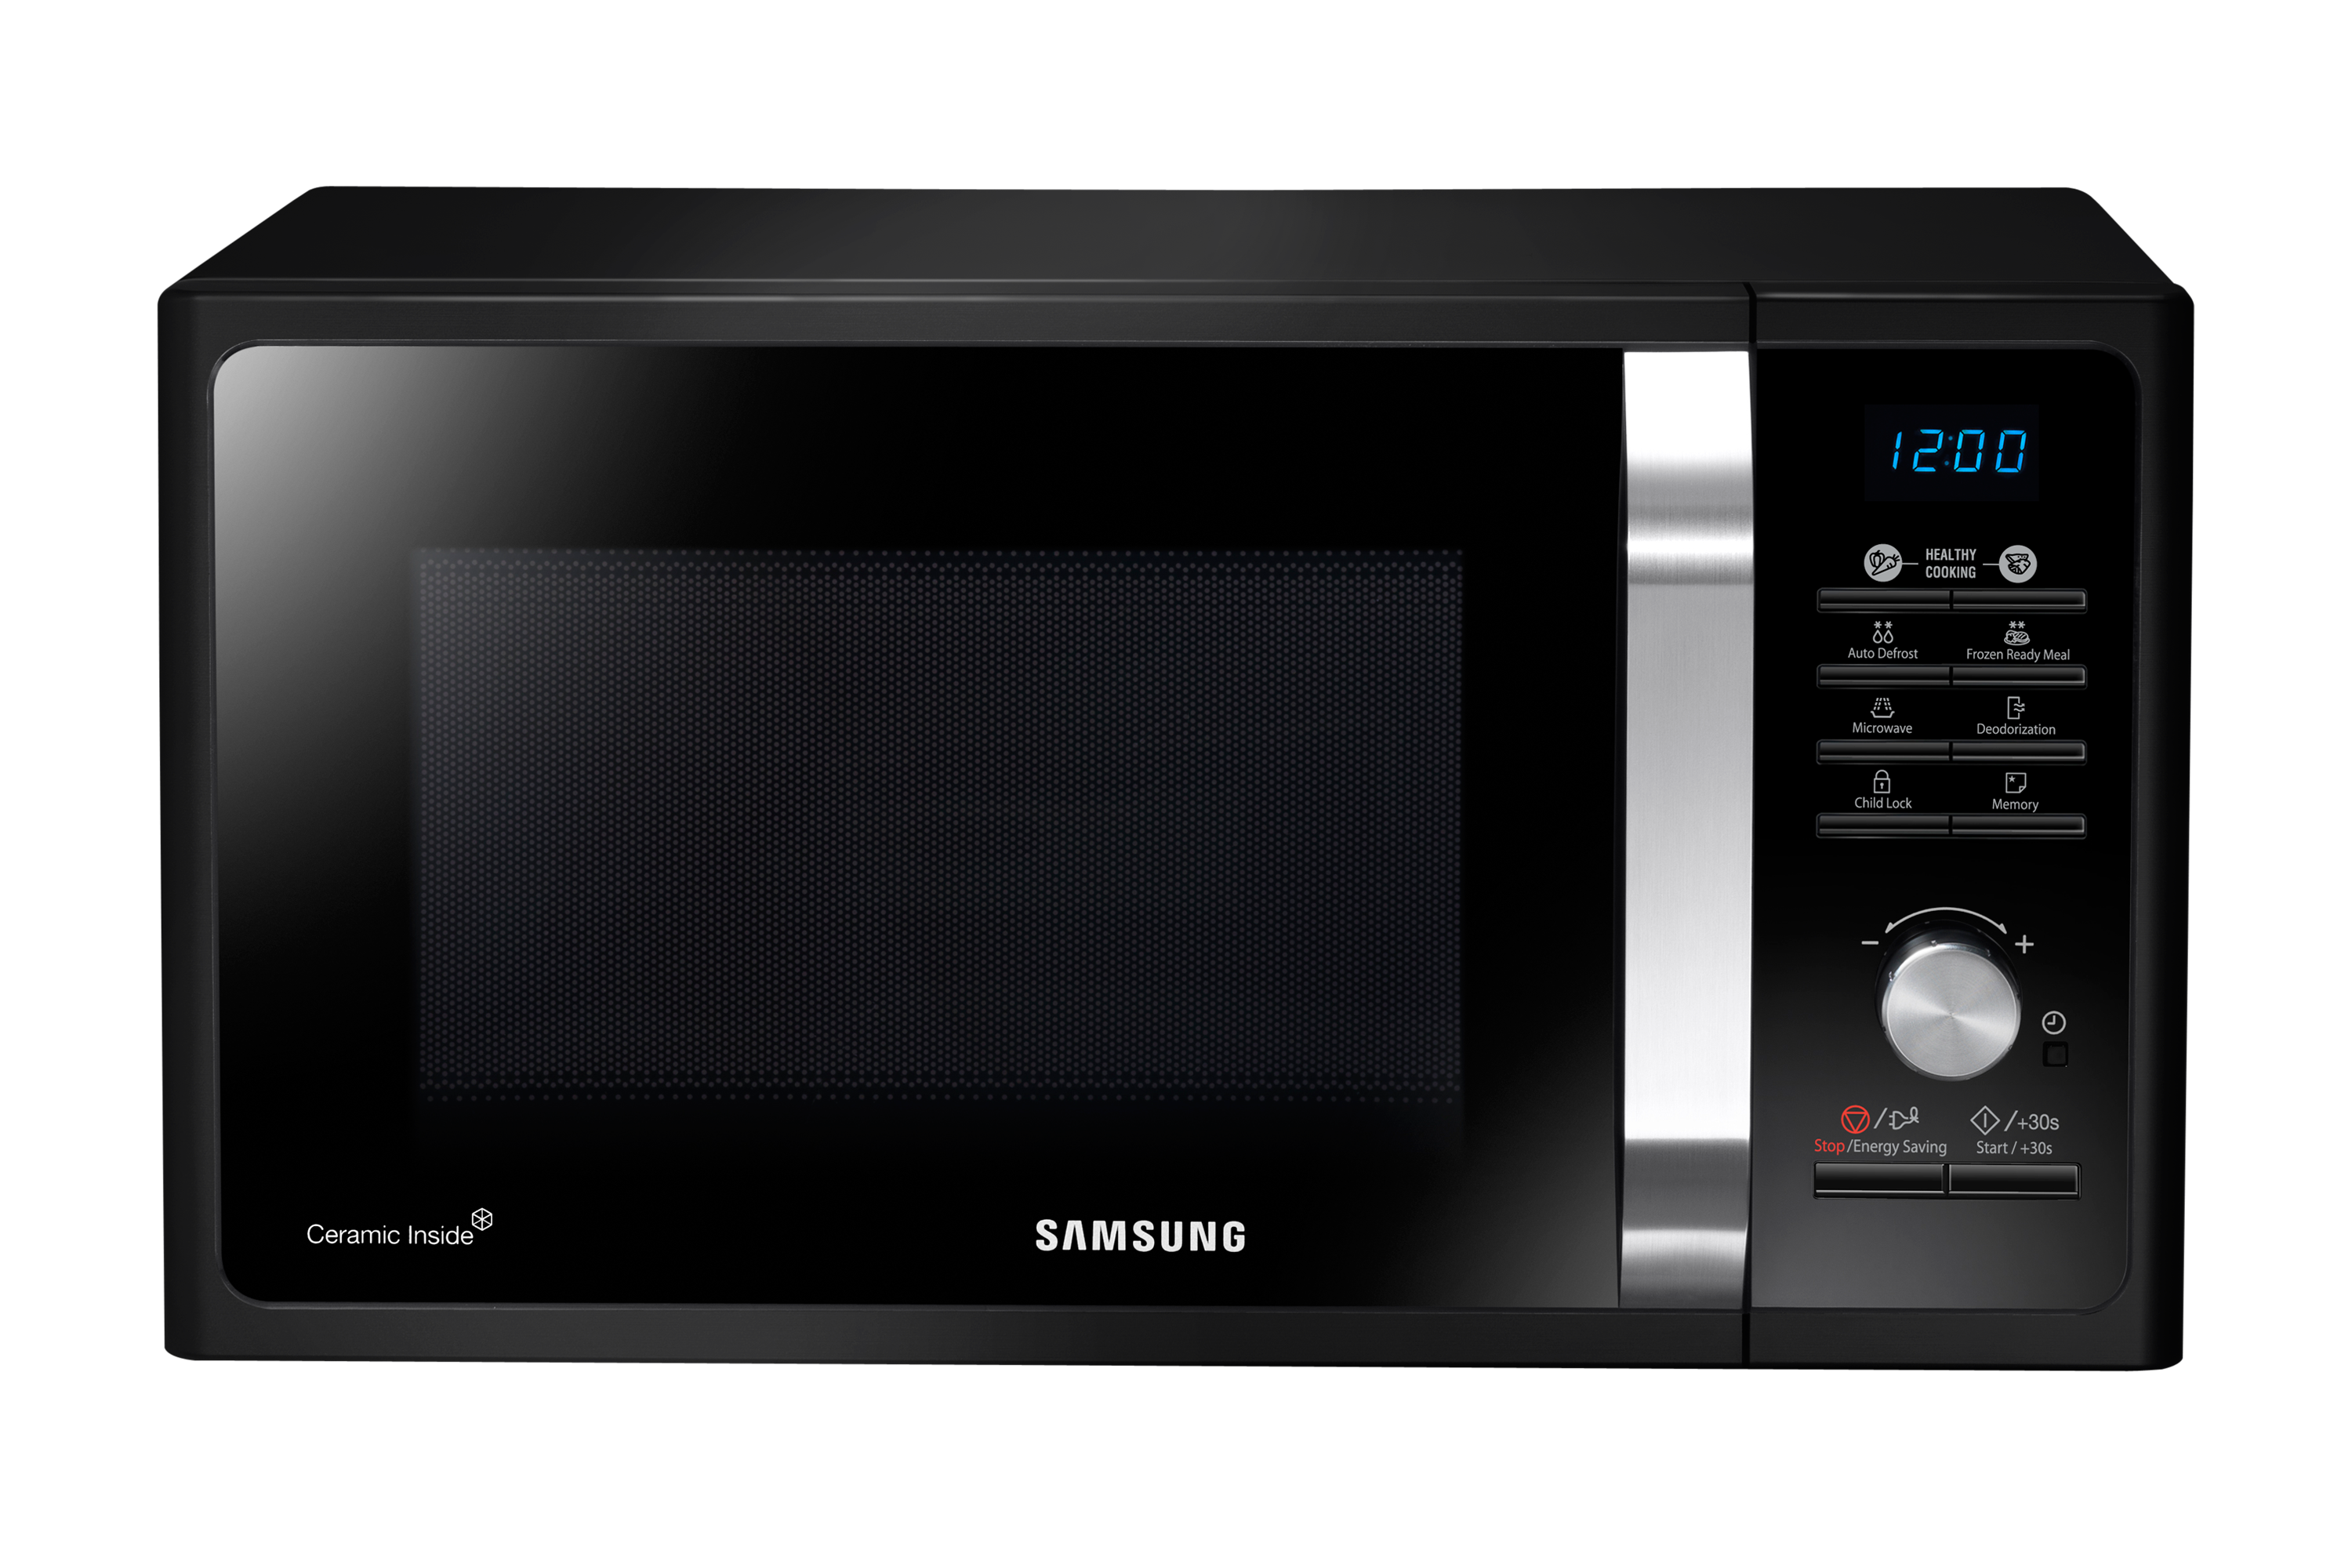 How To Clean Black Appliances Home Appliances Samsung Store Uk